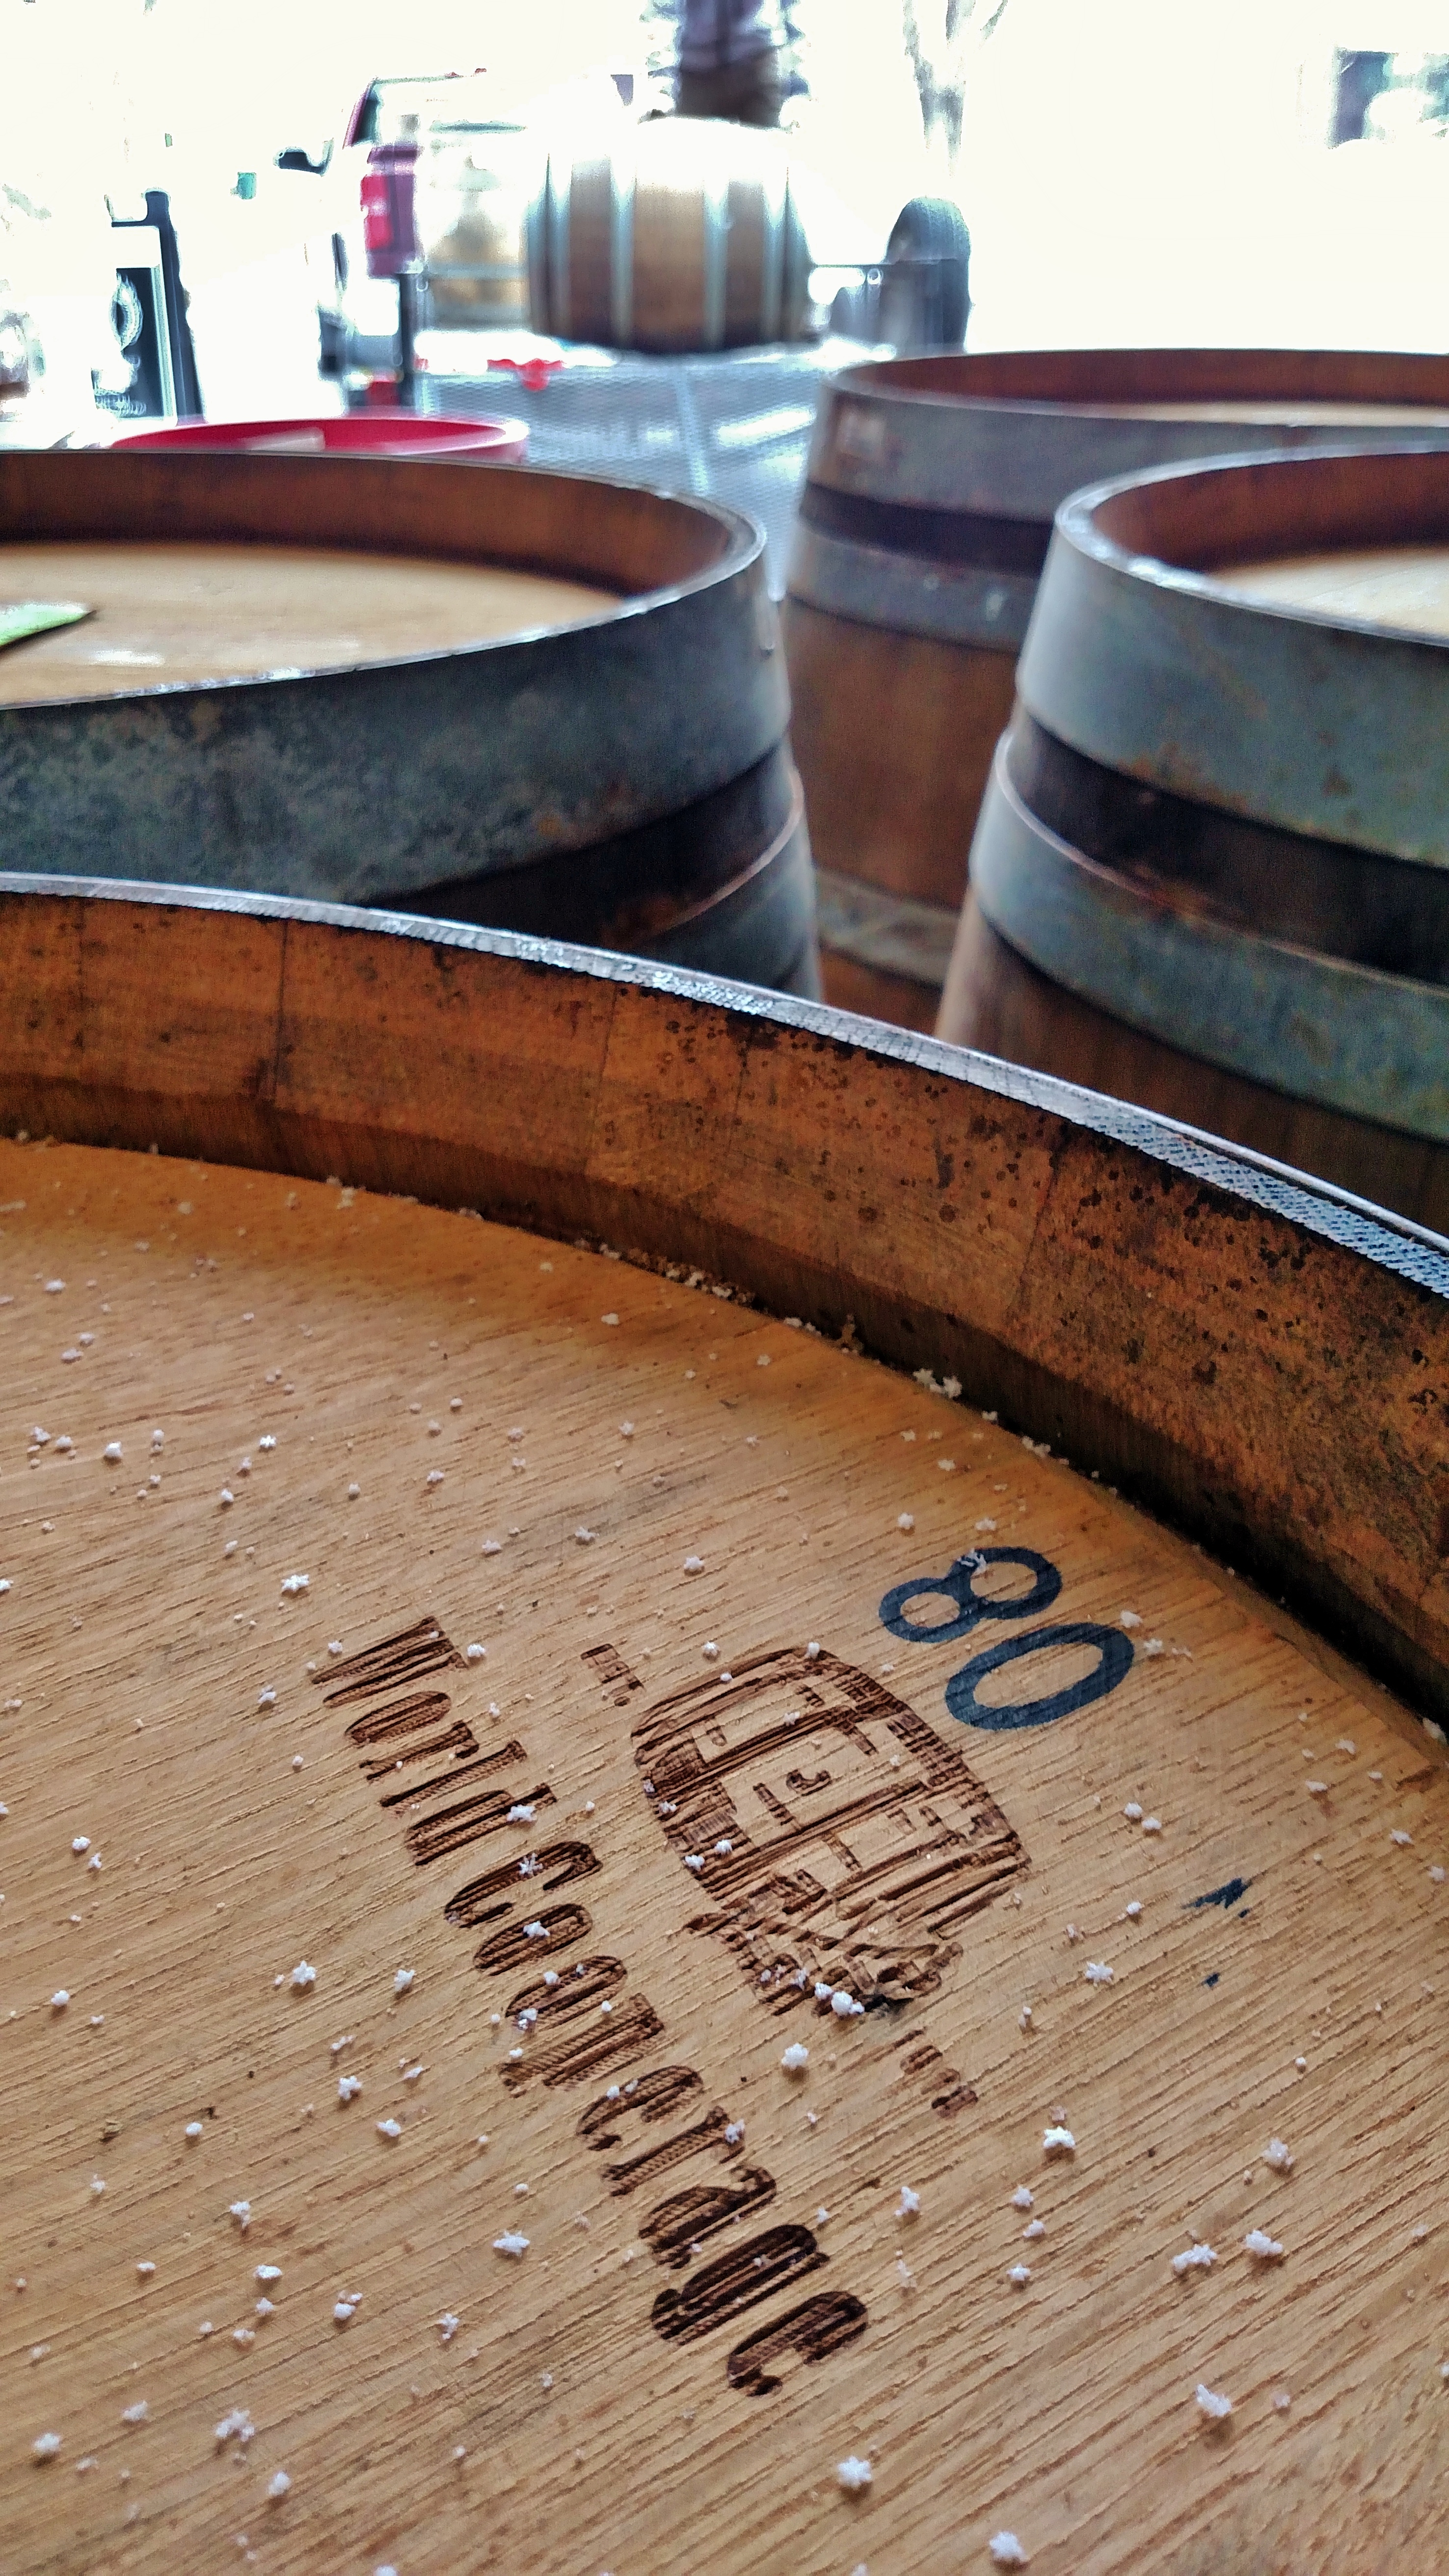 Thirteen new chardonnay barrels arrive at Red Rock during a gentle snowfall.